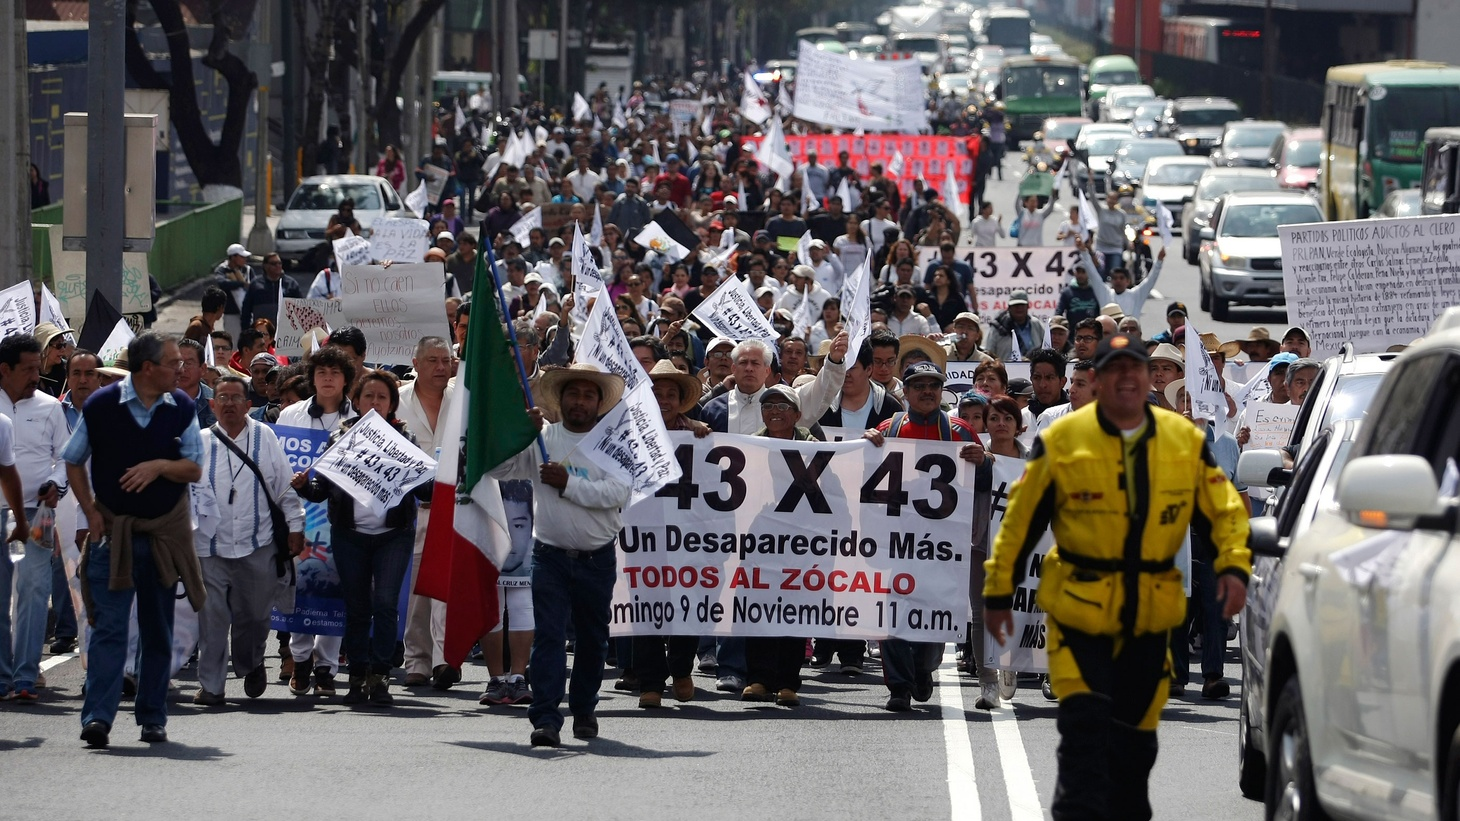 The historic deal between the US and China promises to set the most ambitious carbon reduction standards ever from the world's top two greenhouse gas producers. Also, the case of 43 missing students in Mexico has made headlines around the world. What would it take to break the hold of drugs and political corruption in Mexico?